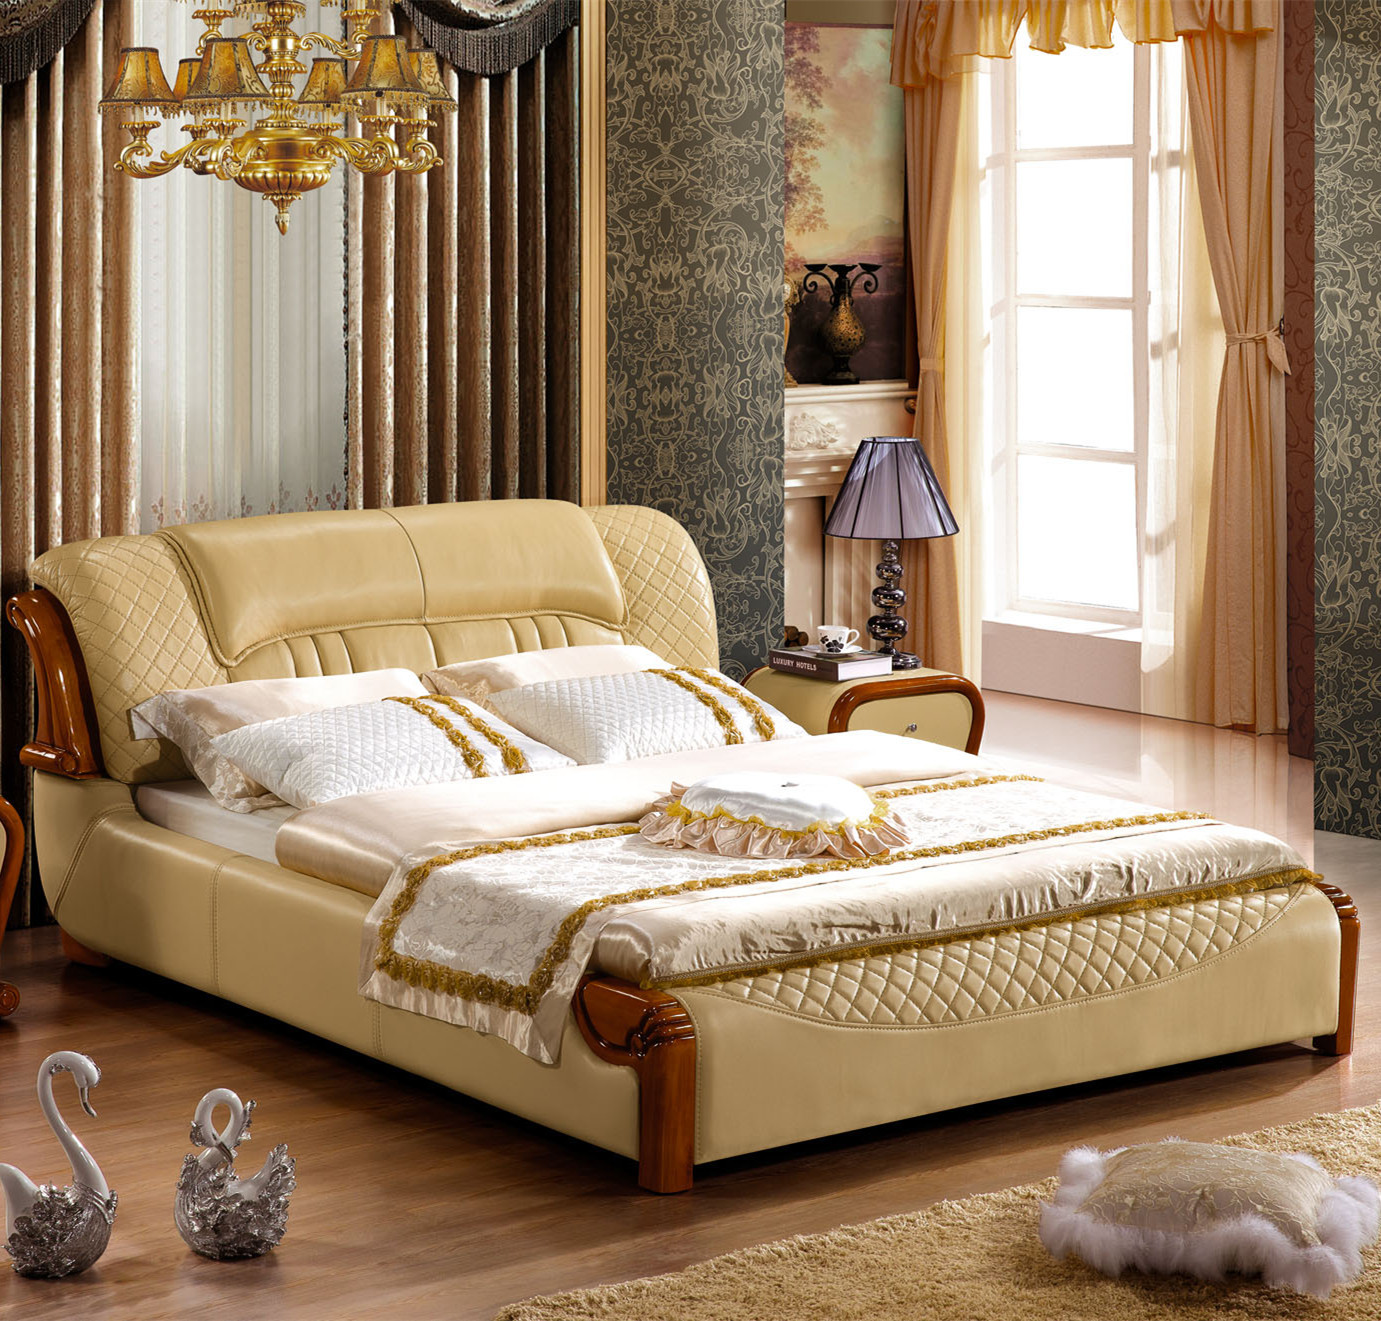 Bed continental bed bedroom furniture soft bed wholesale custom 211 imported leather bed factory for Continental furniture company bedroom